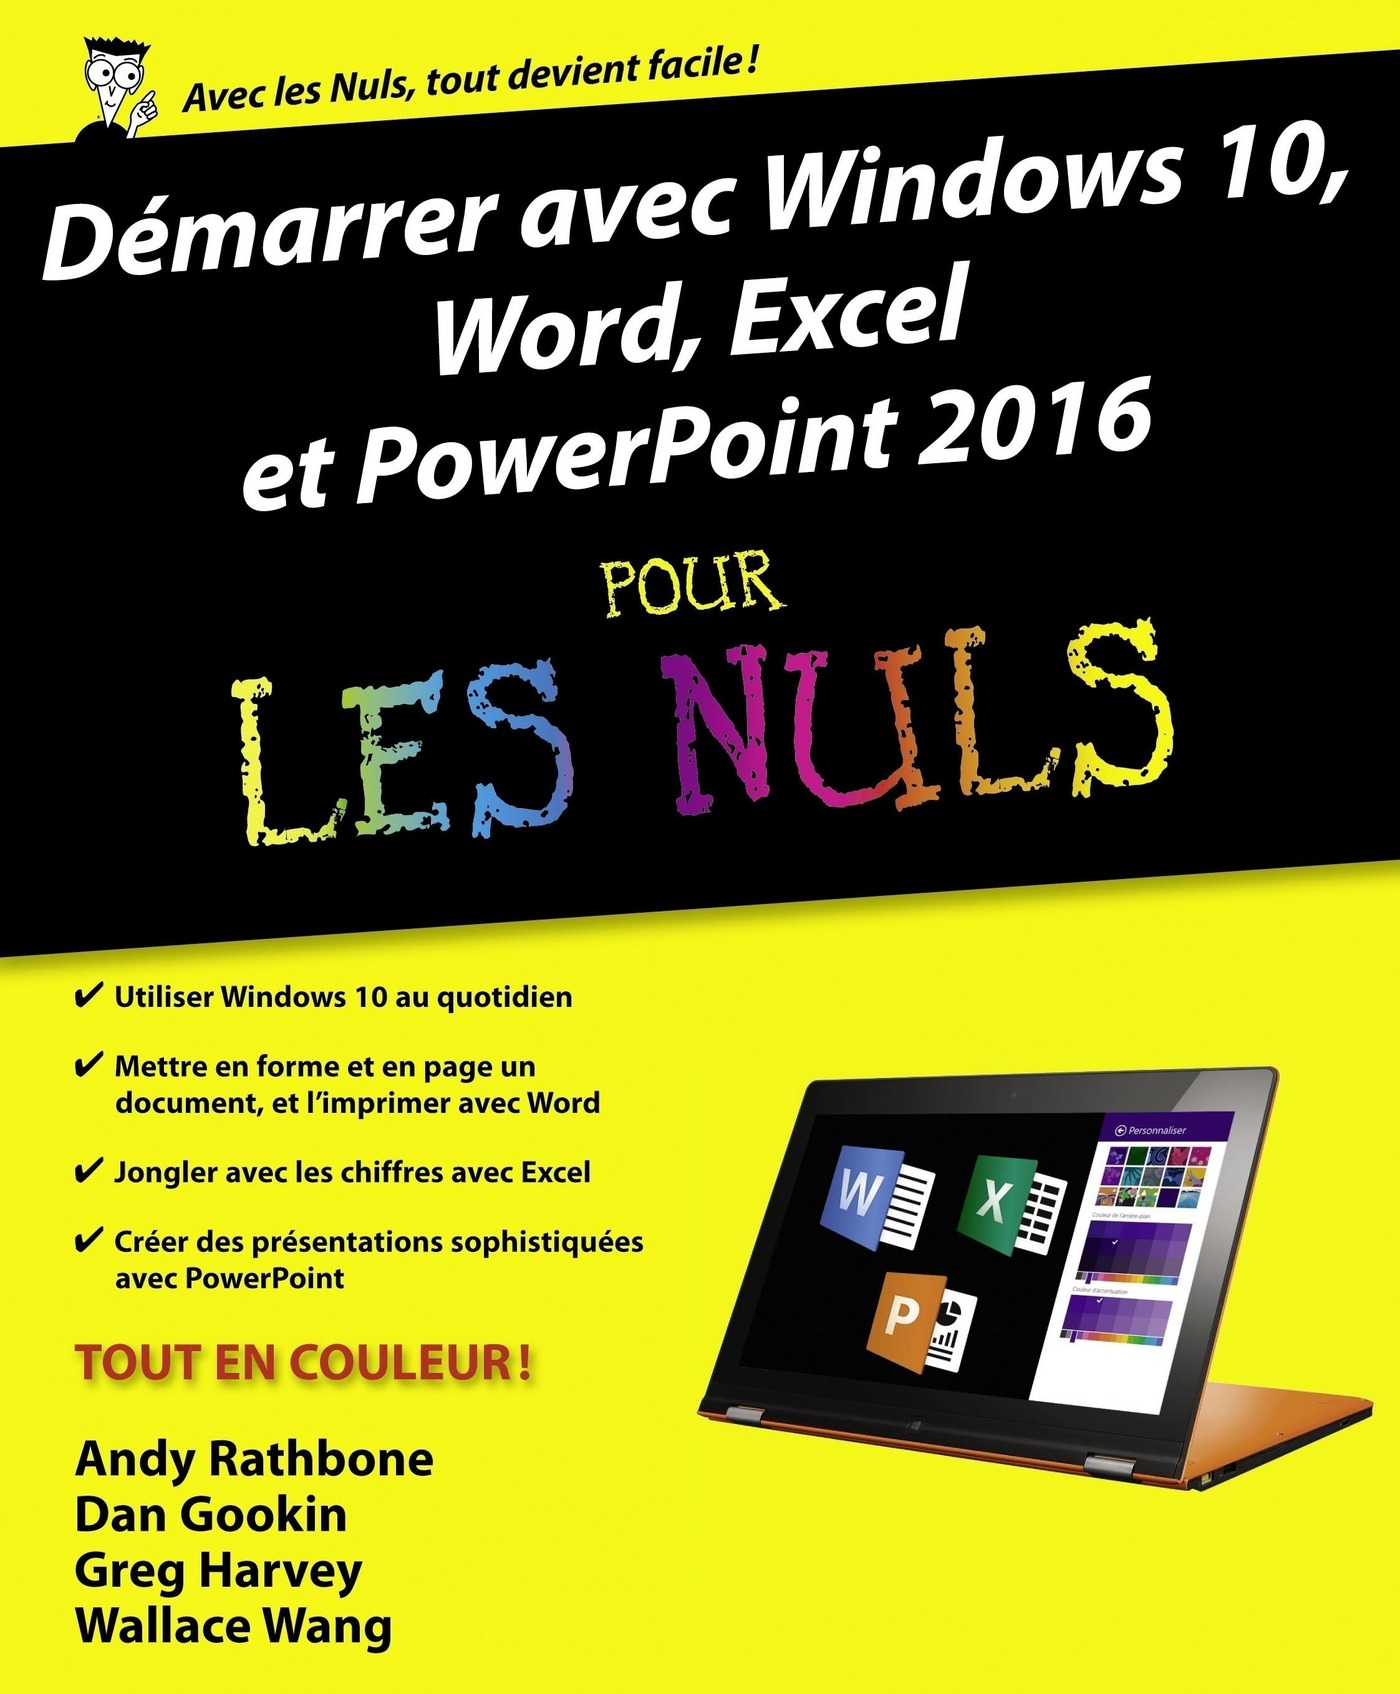 Vignette du livre Démarrer avec Windows 10, Word, Excel et PowerPoint 2016 pour... - Andy Rathbone, Dan Gookin, Greg Harvey, Doug Lowe, Wallace Wang